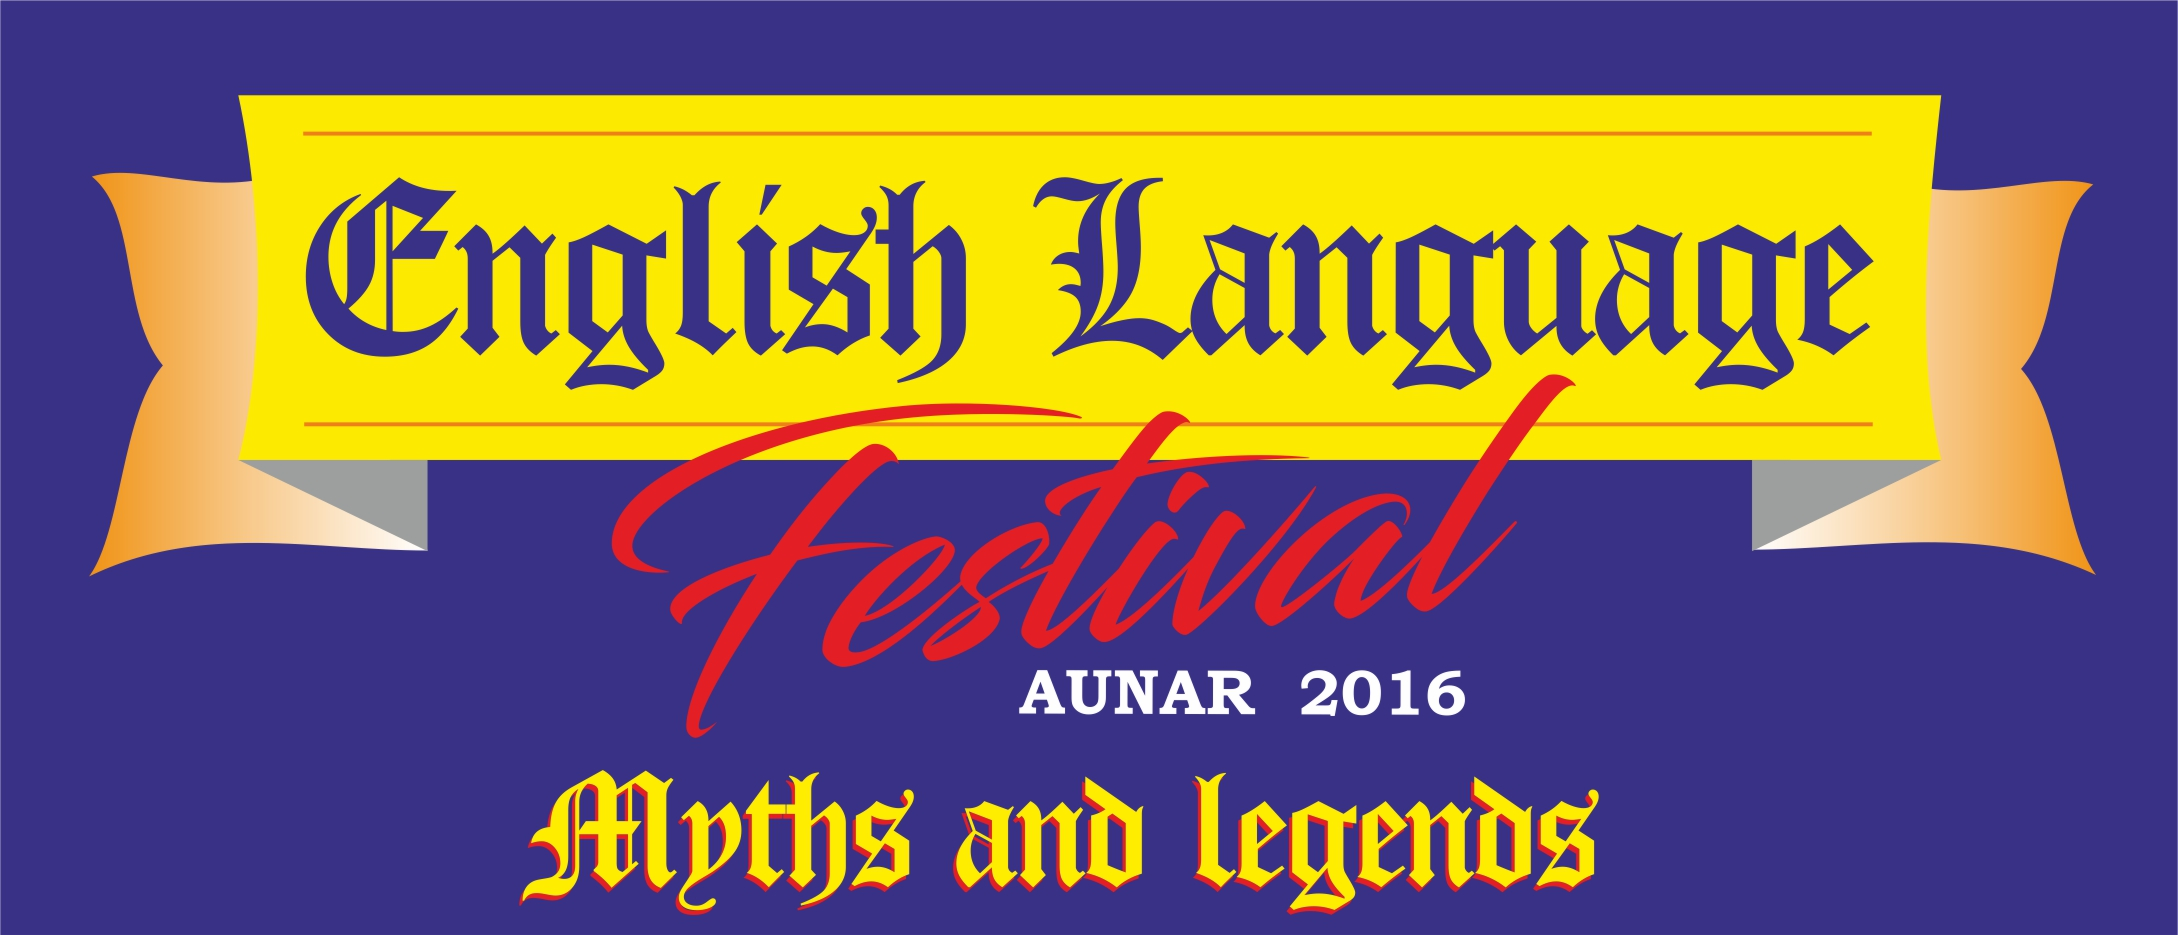 ENGLISH LANGUAGE FESTIVAL AUNAR 2016